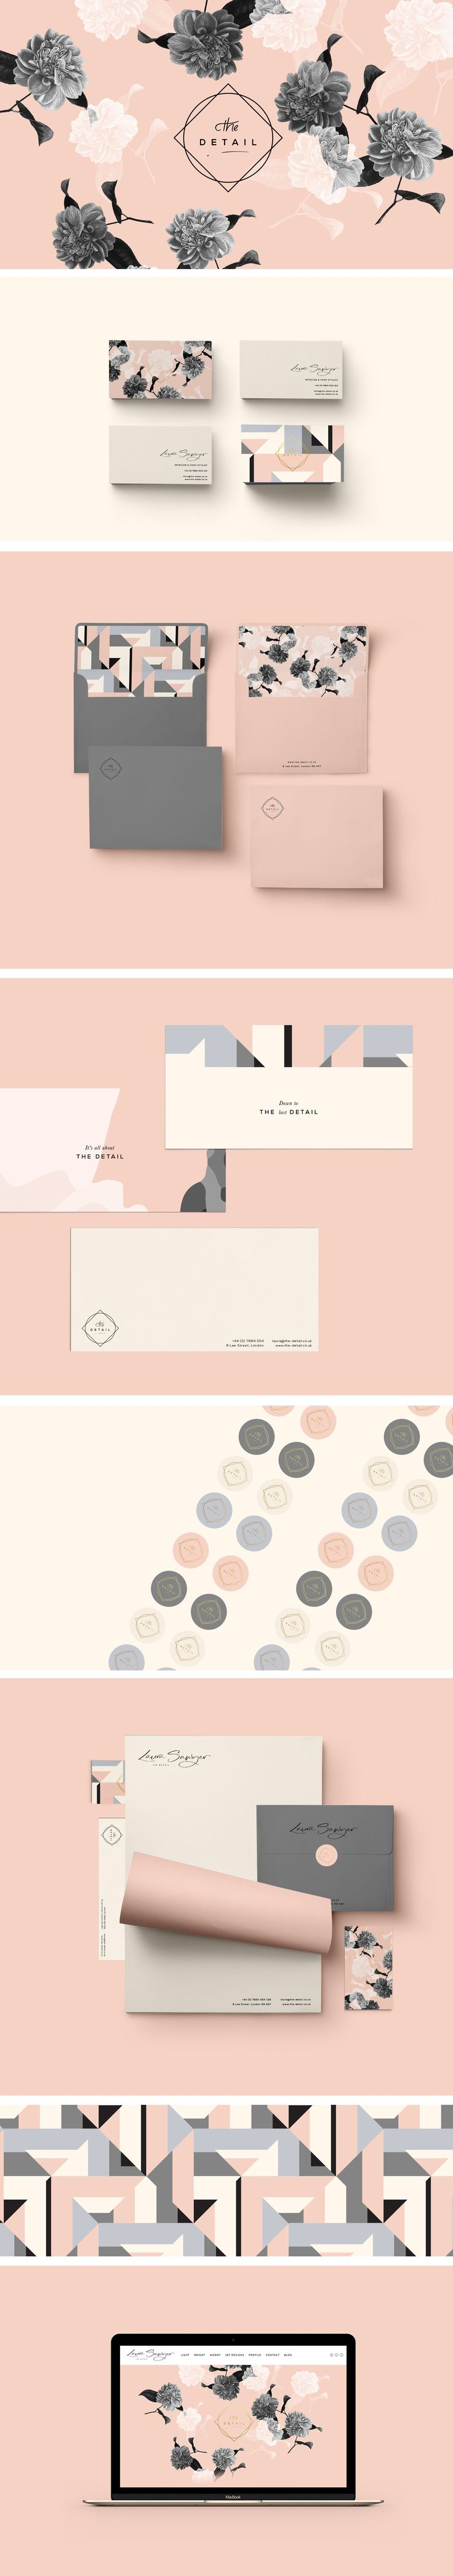 Laura Sawyer Brand Identity by Cocorrina                                                                                                                                                                                 More